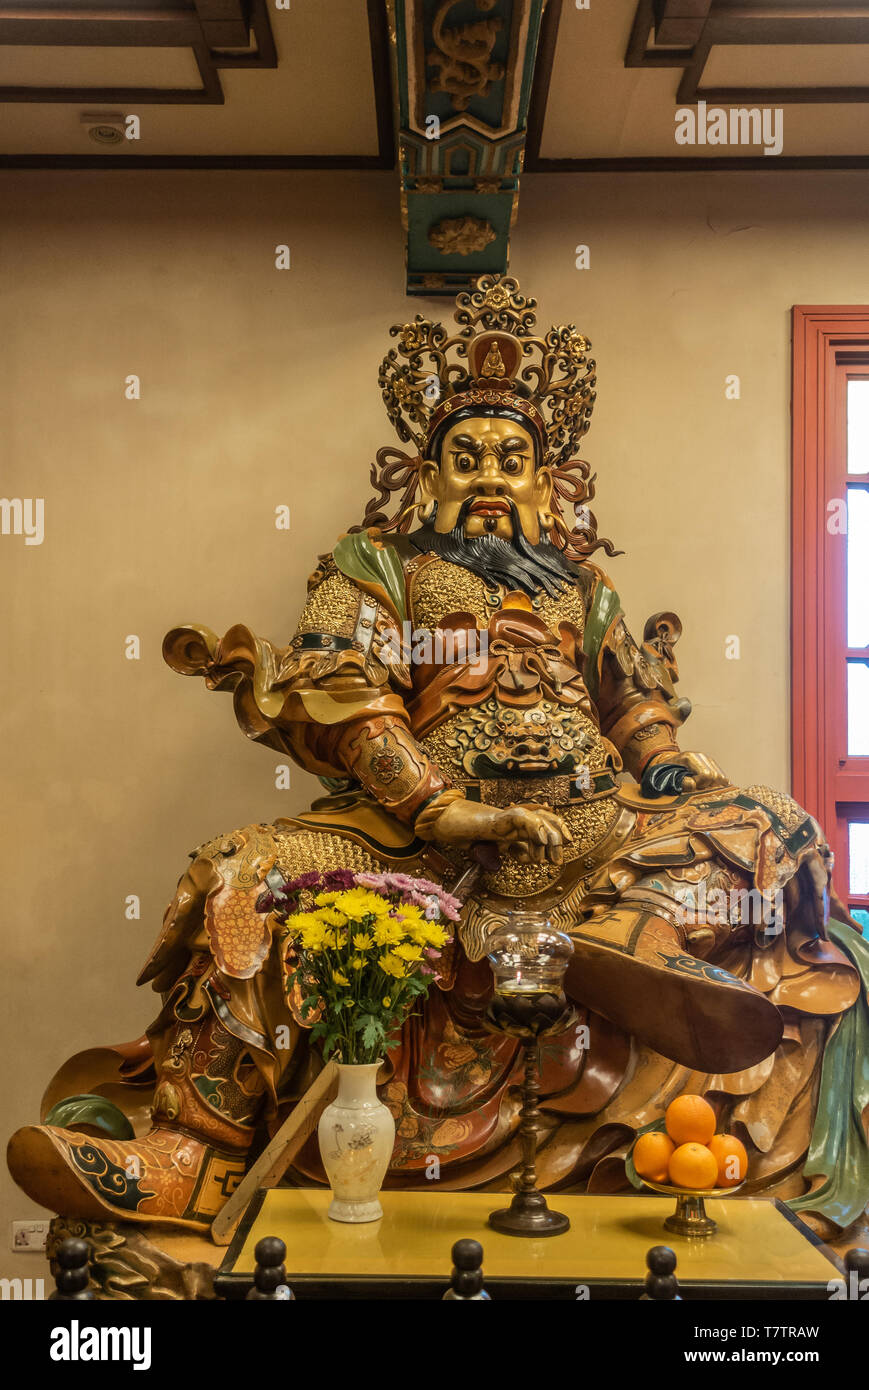 Hong Kong, China - March 7, 2019: Lantau Island. Po Lin Buddhist Monastery. Extensively decorated statue of South heavenly king Virudhaka offers shade - Stock Image